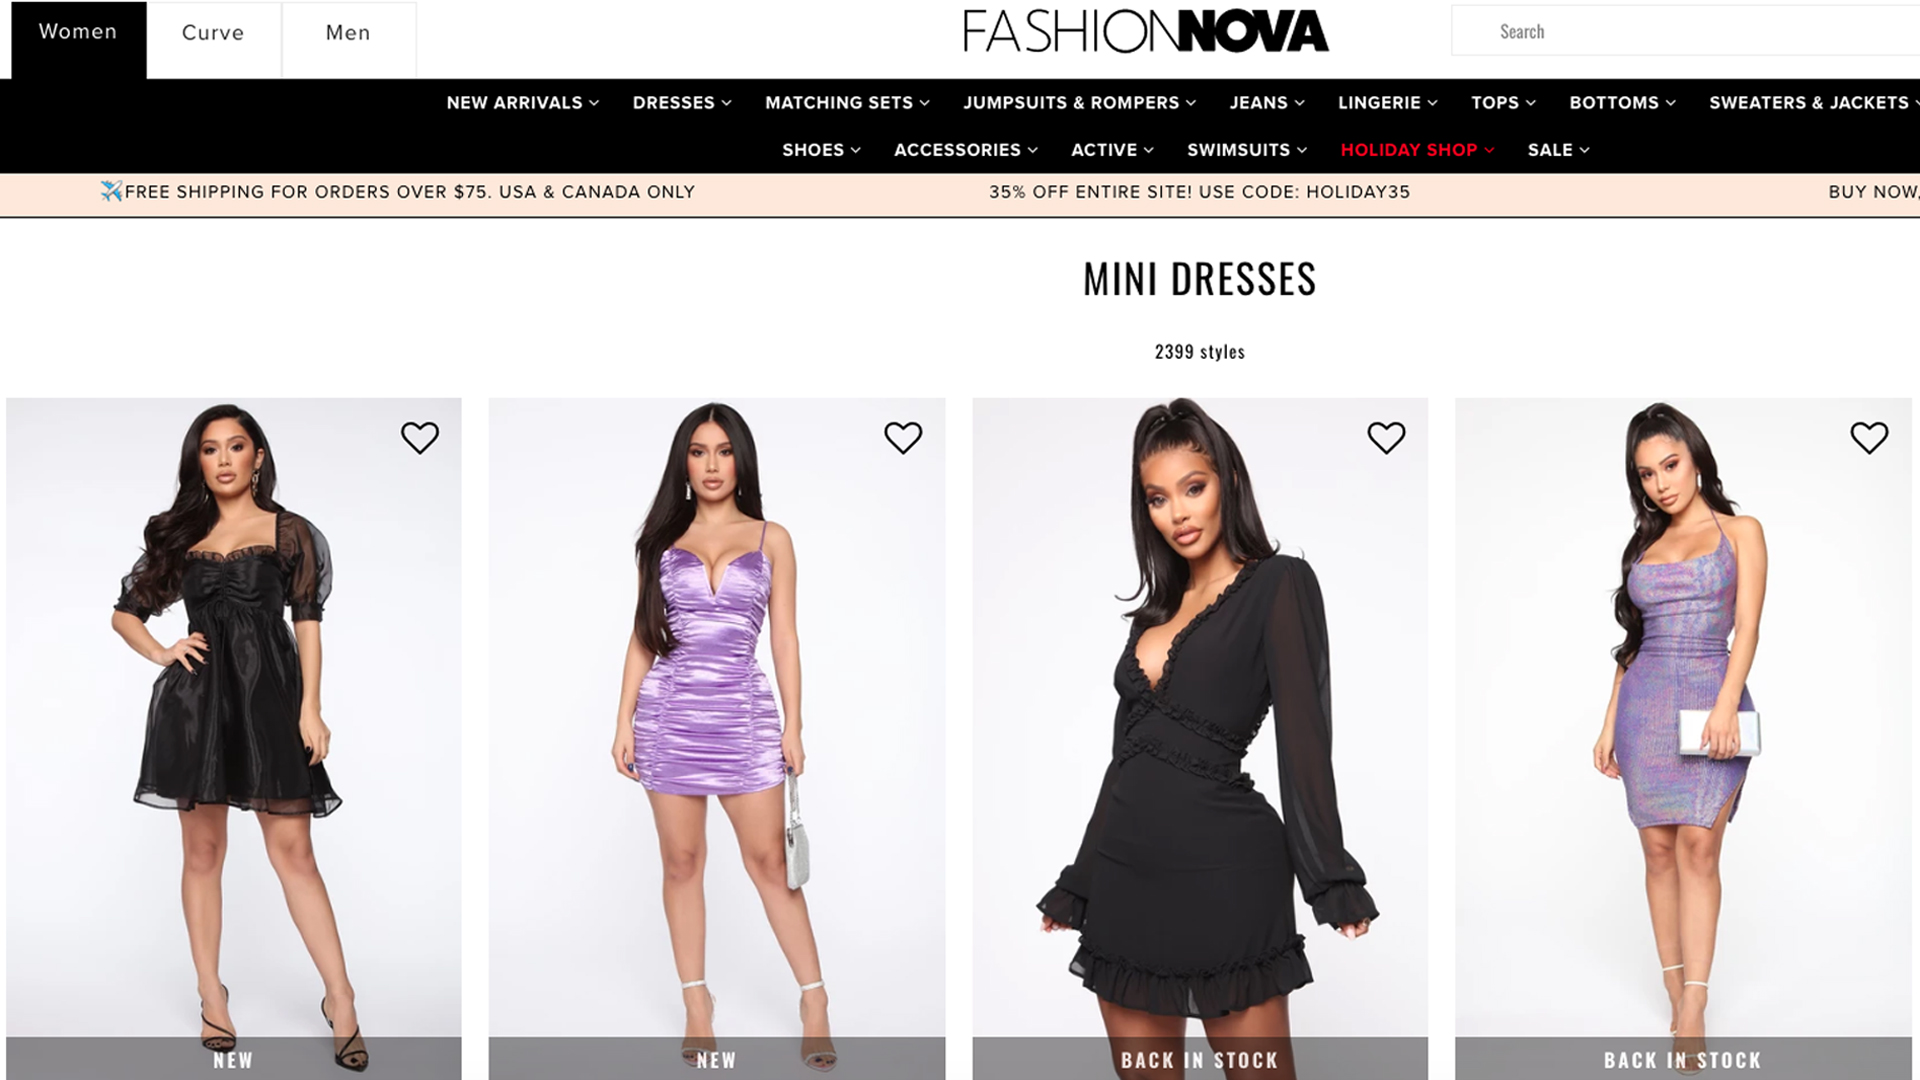 Mini dresses sold by Fashion Nova are displayed on the retailer's website on Dec. 19, 2019.